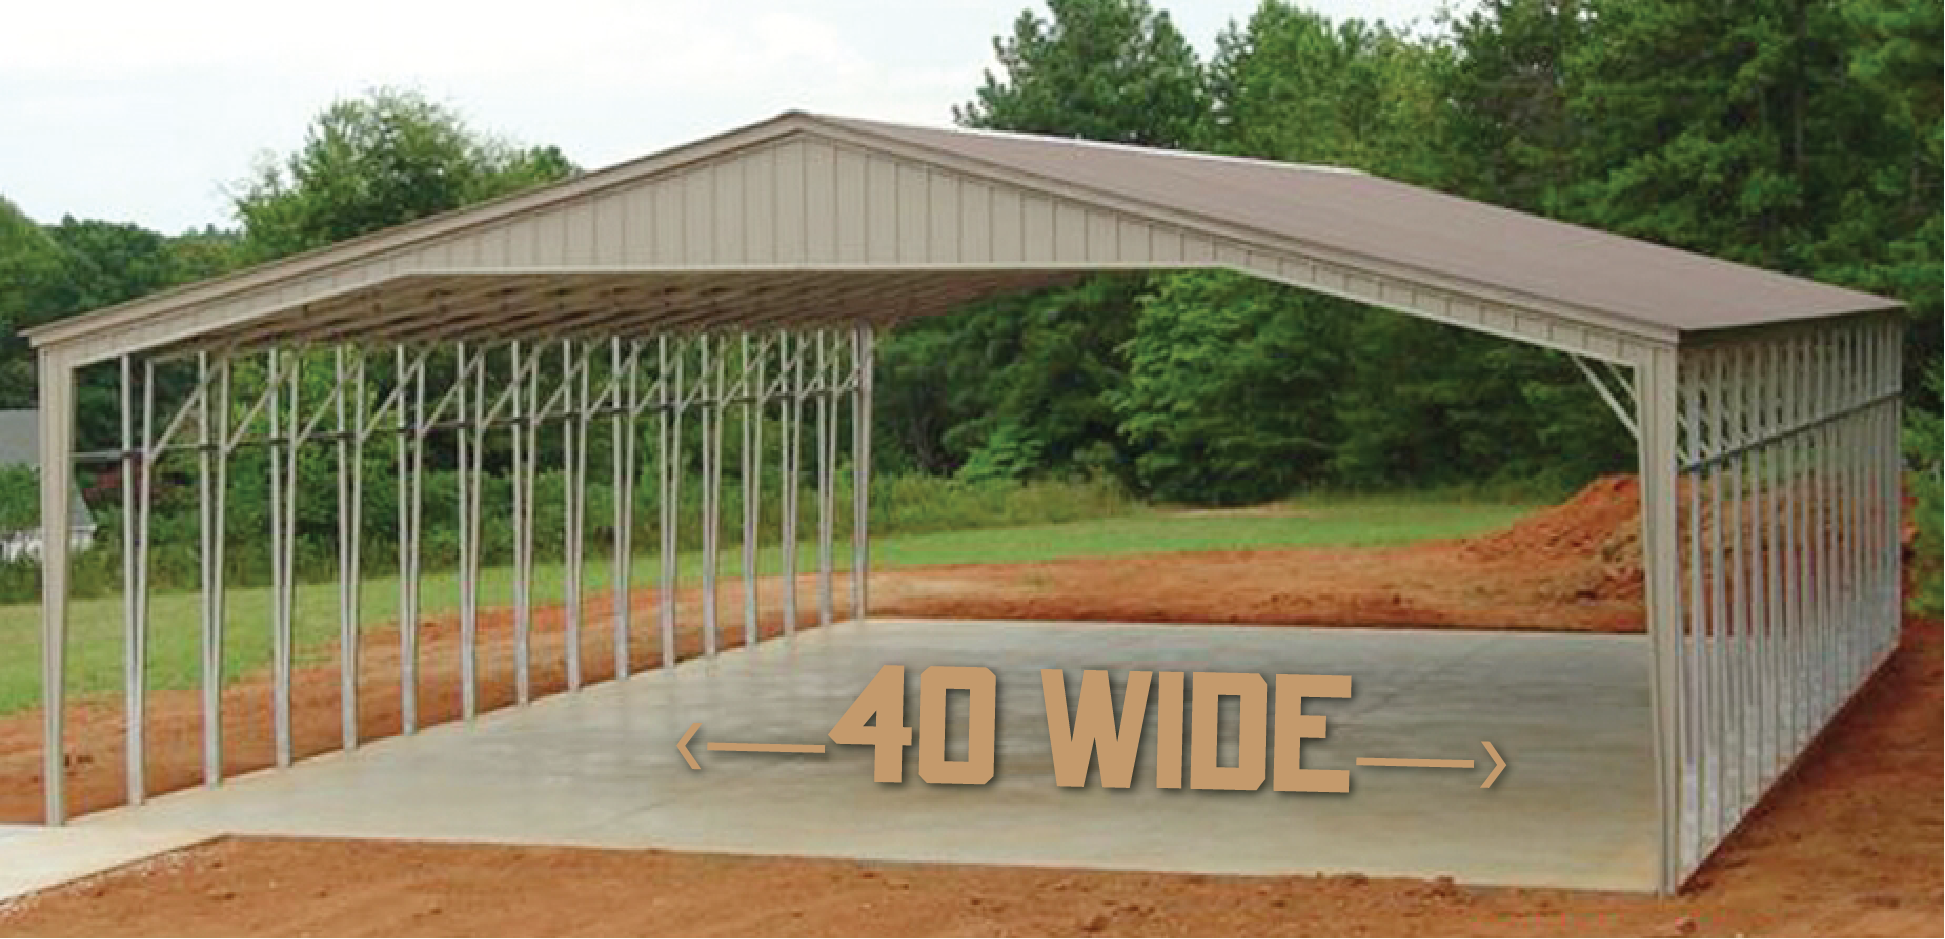 Carolina Carports - 40' Wide Carports